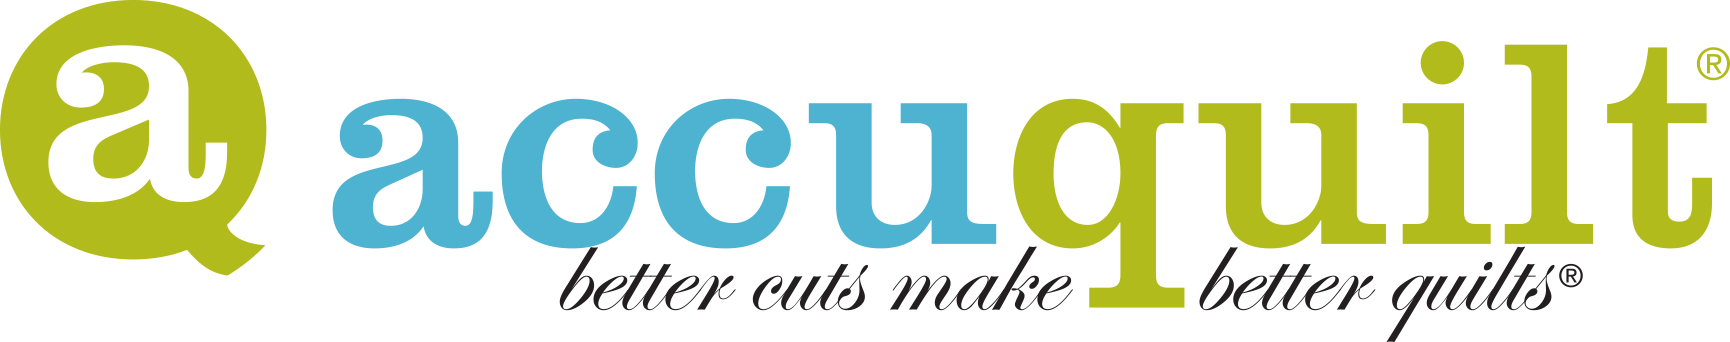 accuquilt quilting machine logo